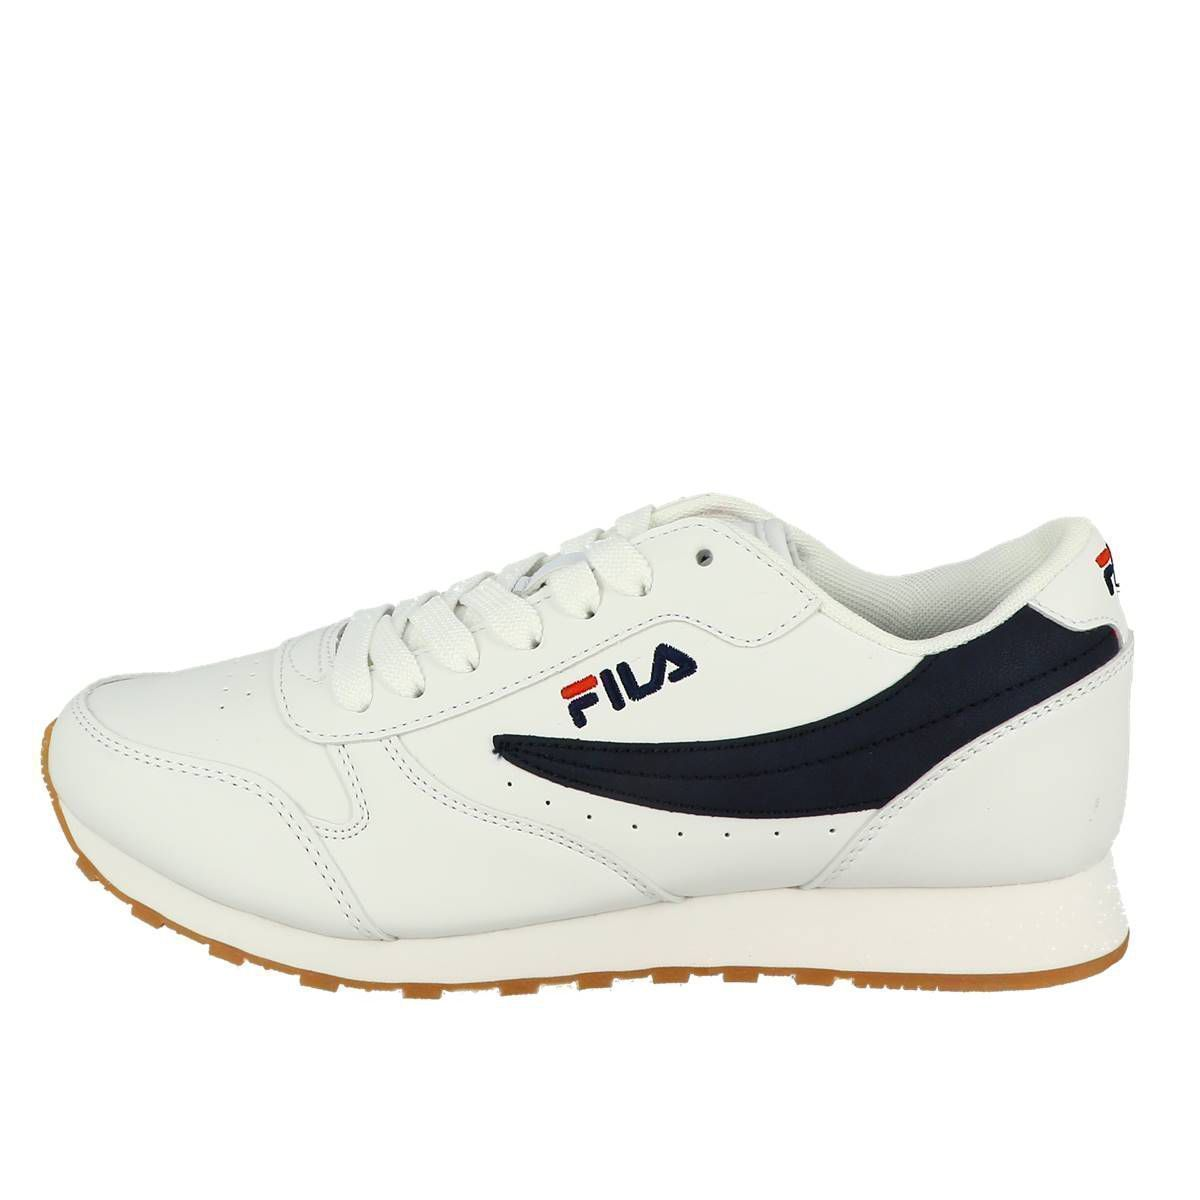 Fila homme orbit low blanc1705201_3